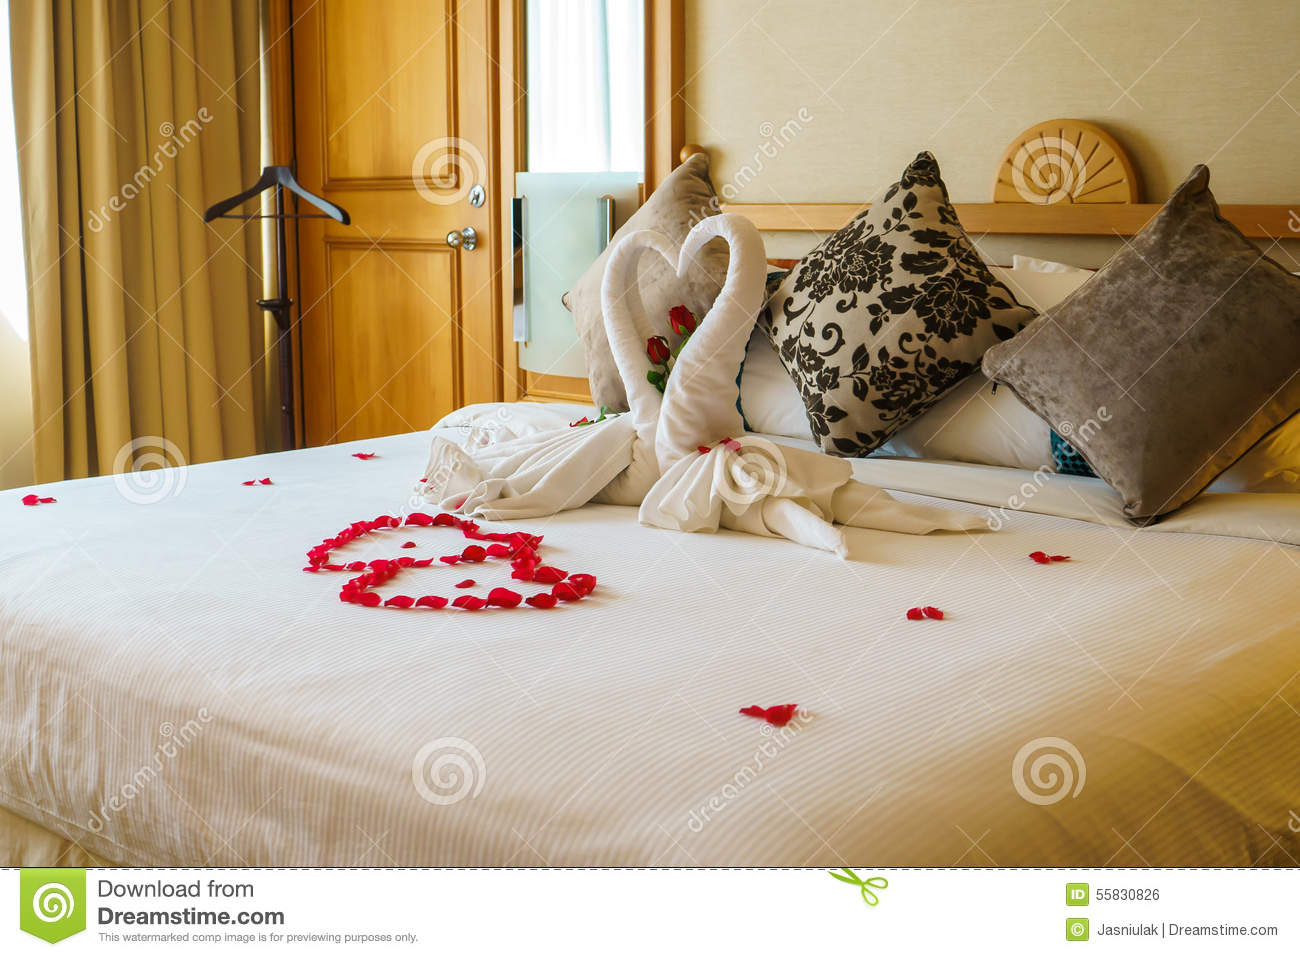 Rose flower decoration on bed stock photography for Bed decoration with rose petals